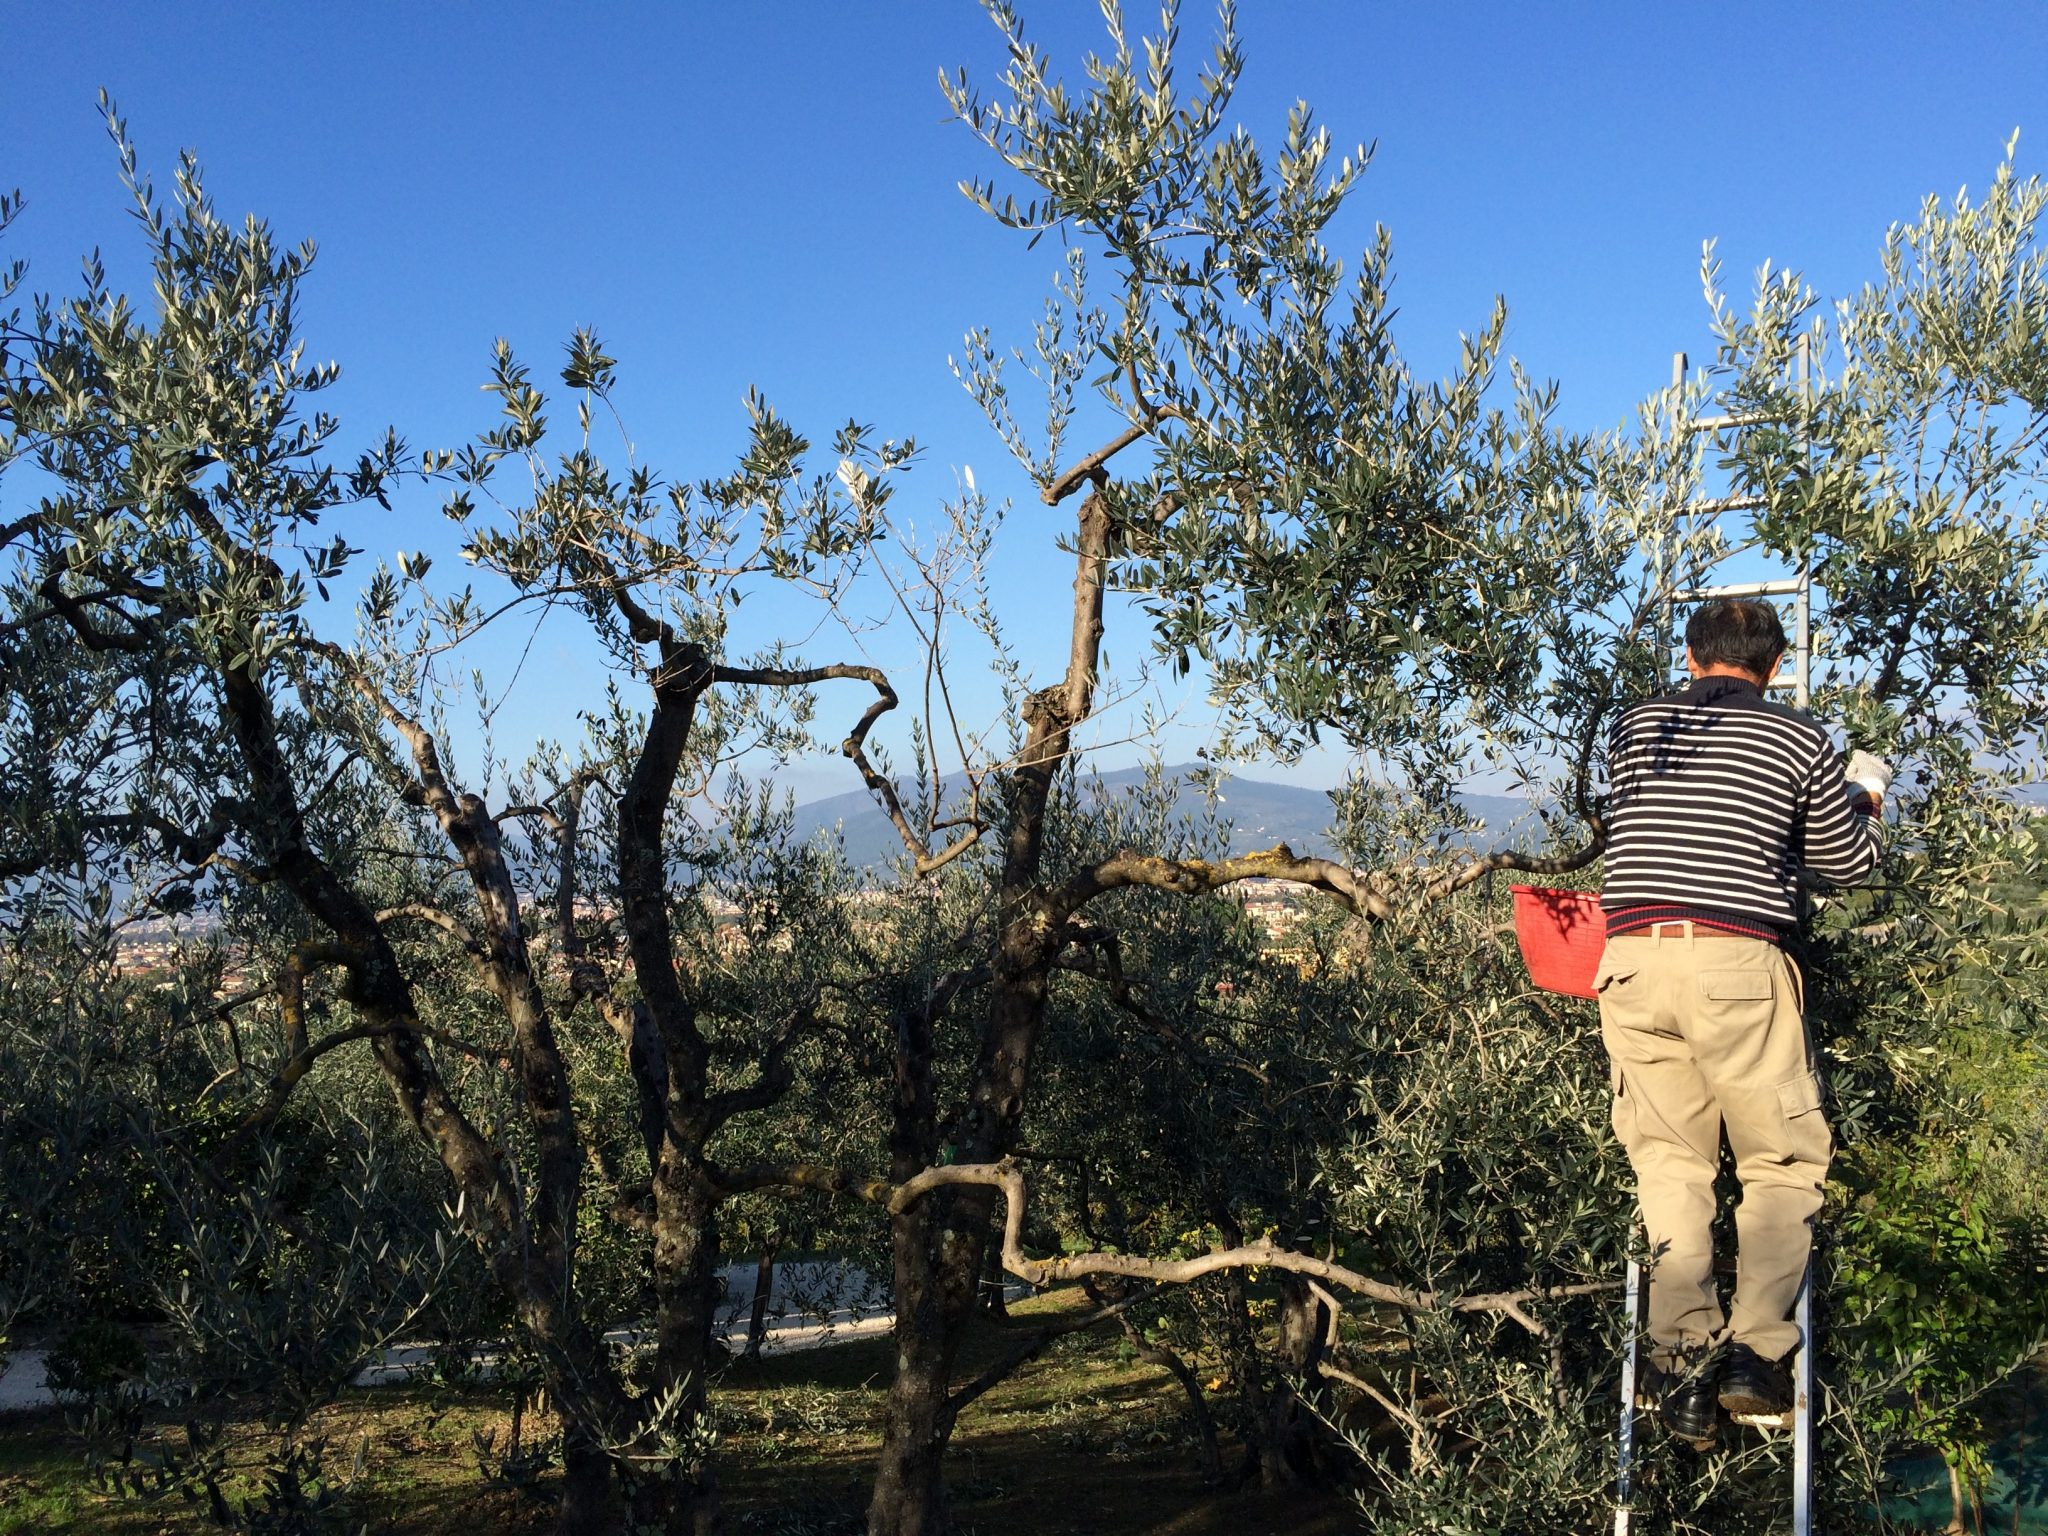 by hand harvesting olives